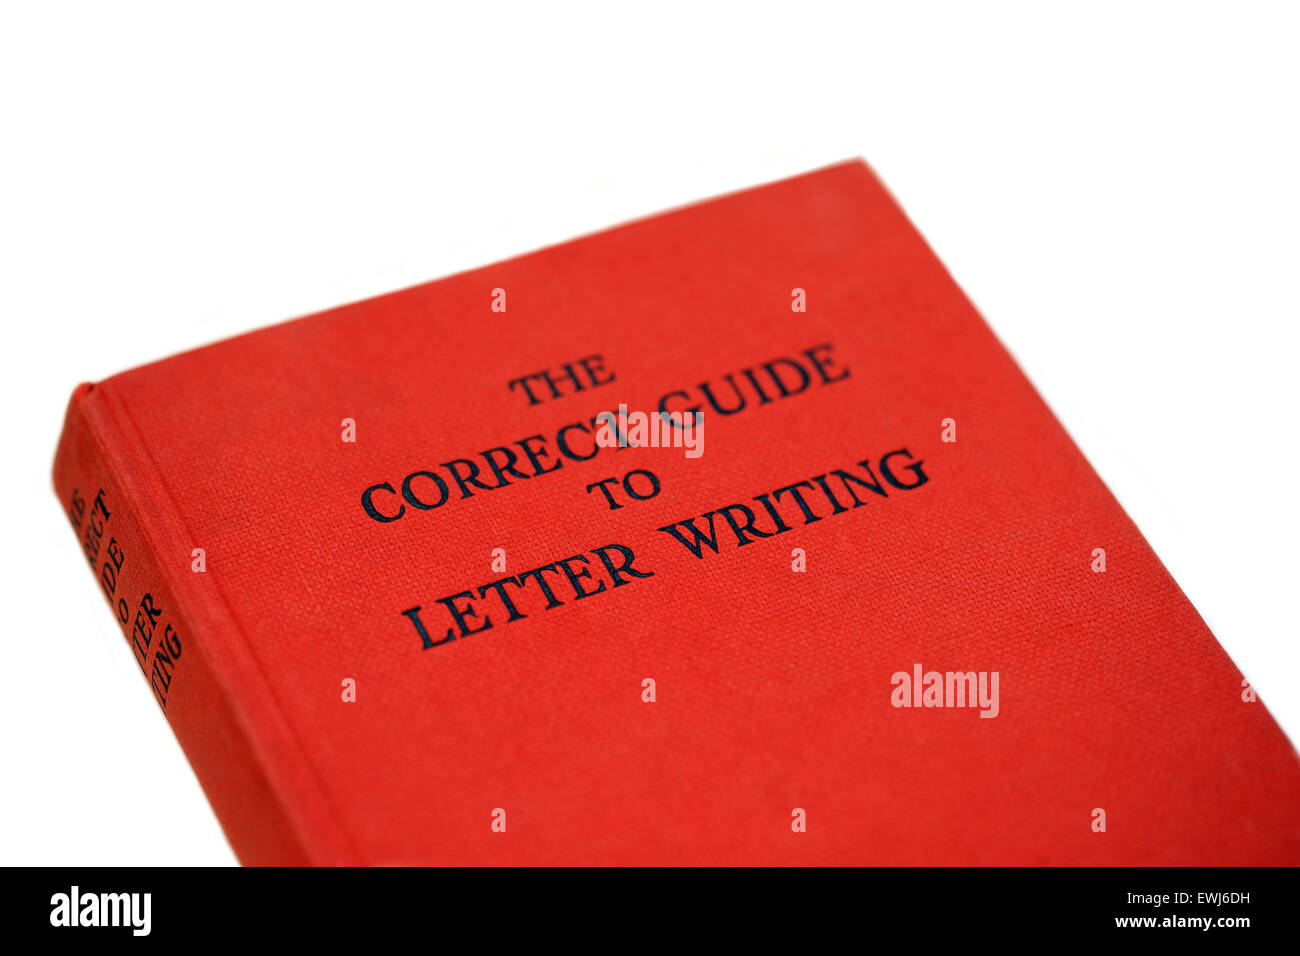 The Correct Guide to letter writing book - Stock Image